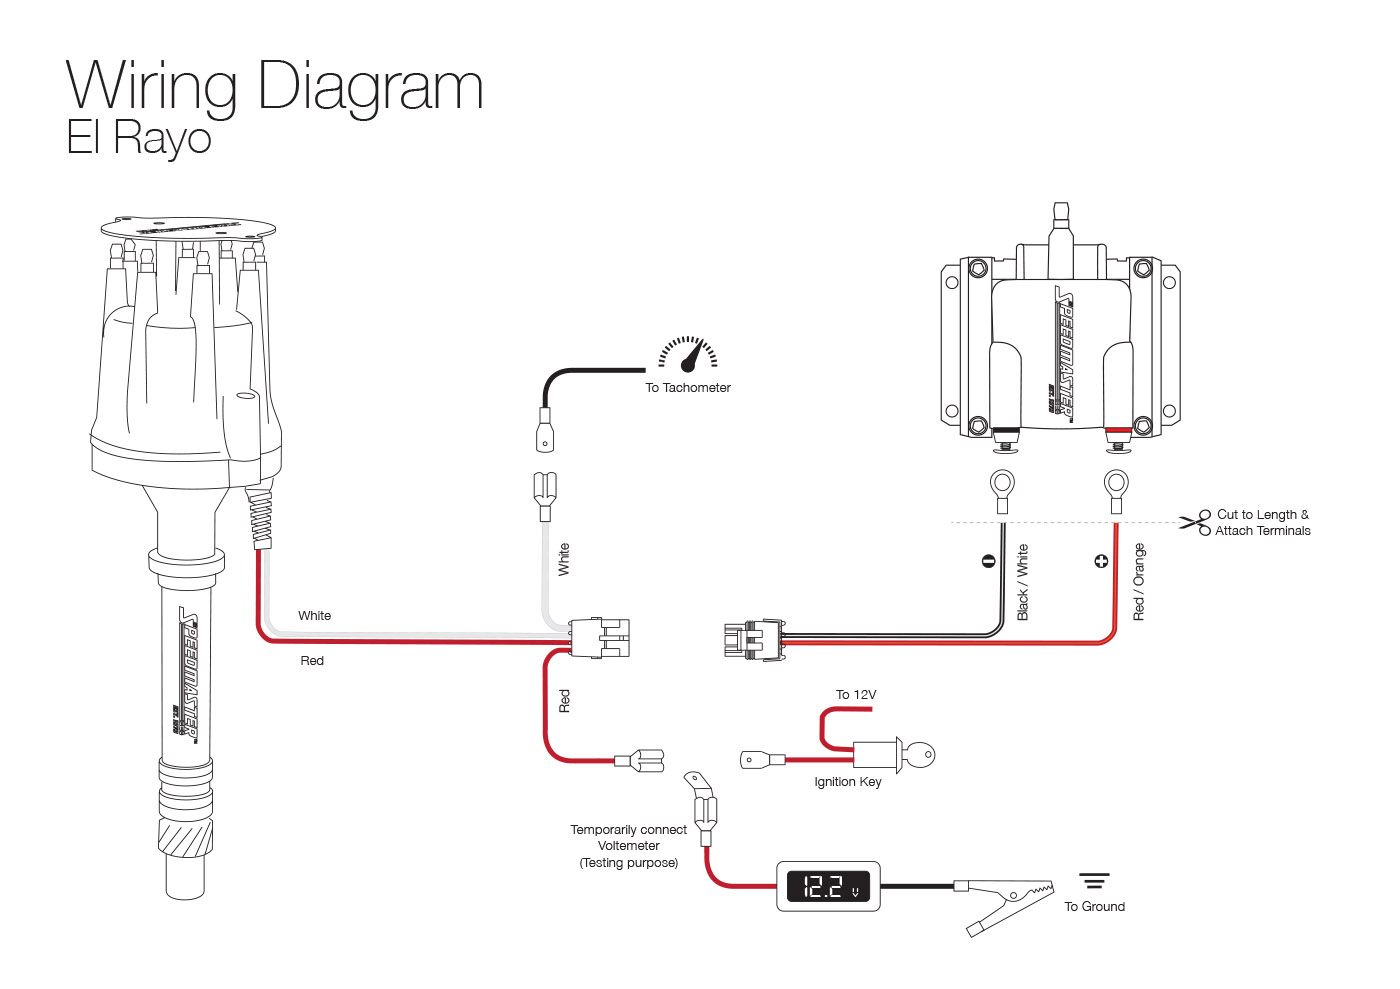 Pro P Distributor Wiring Diagram Electronic | Manual E-Books - Distributor Wiring Diagram